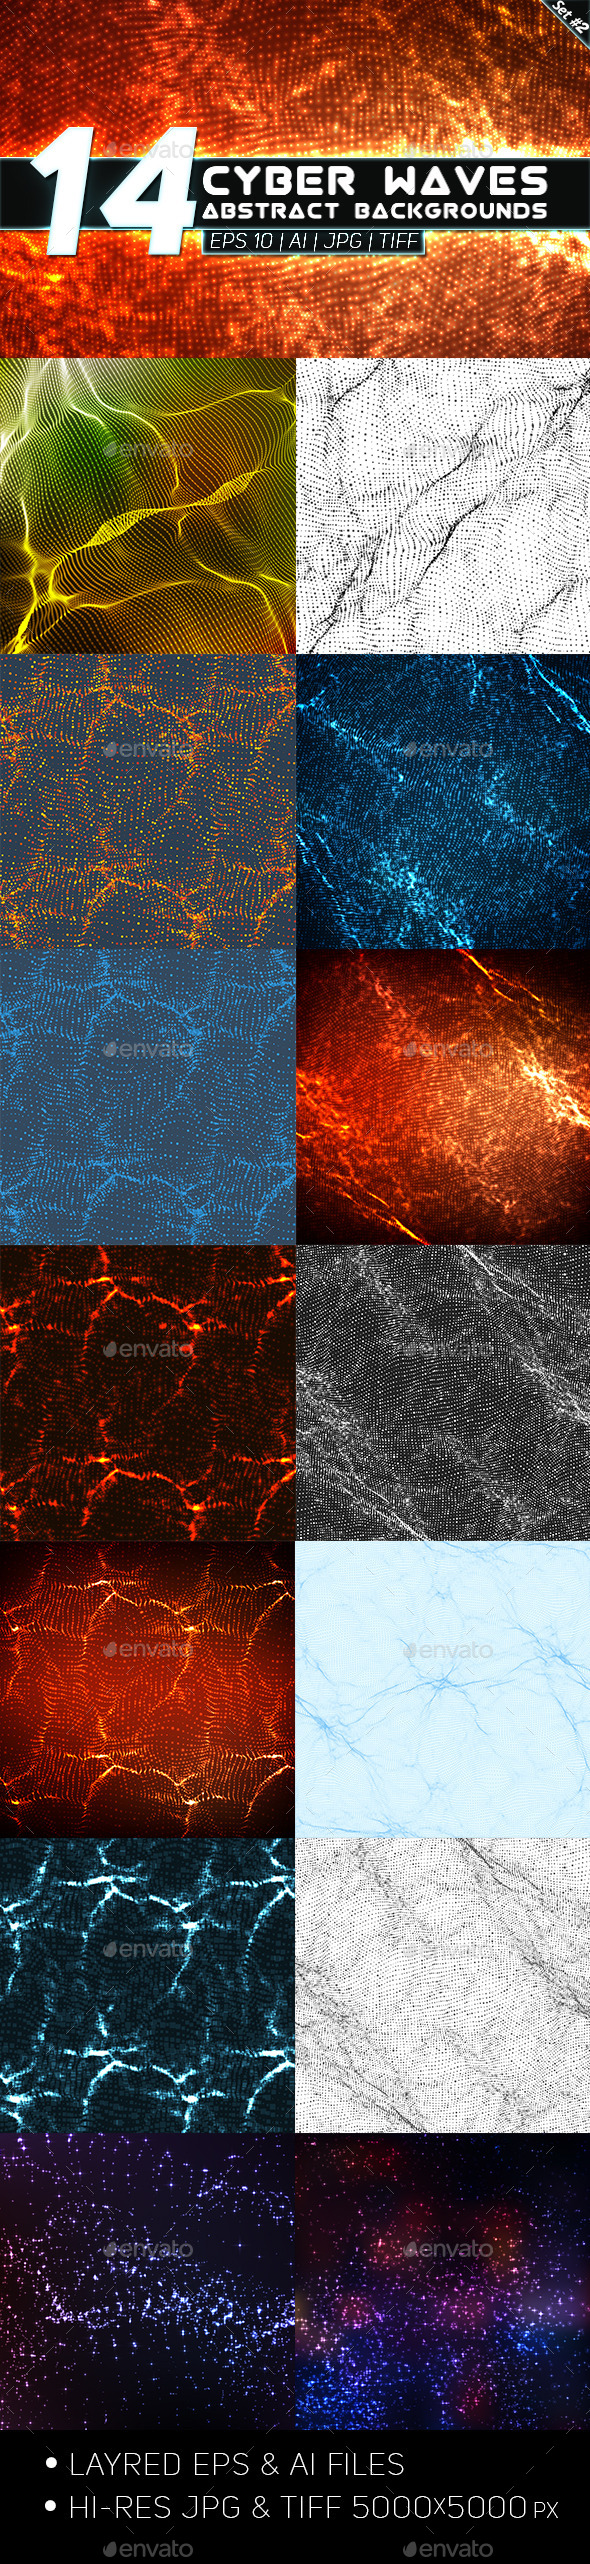 14 Abstract Cyber Waves Backgrounds Set 2 - Technology Conceptual